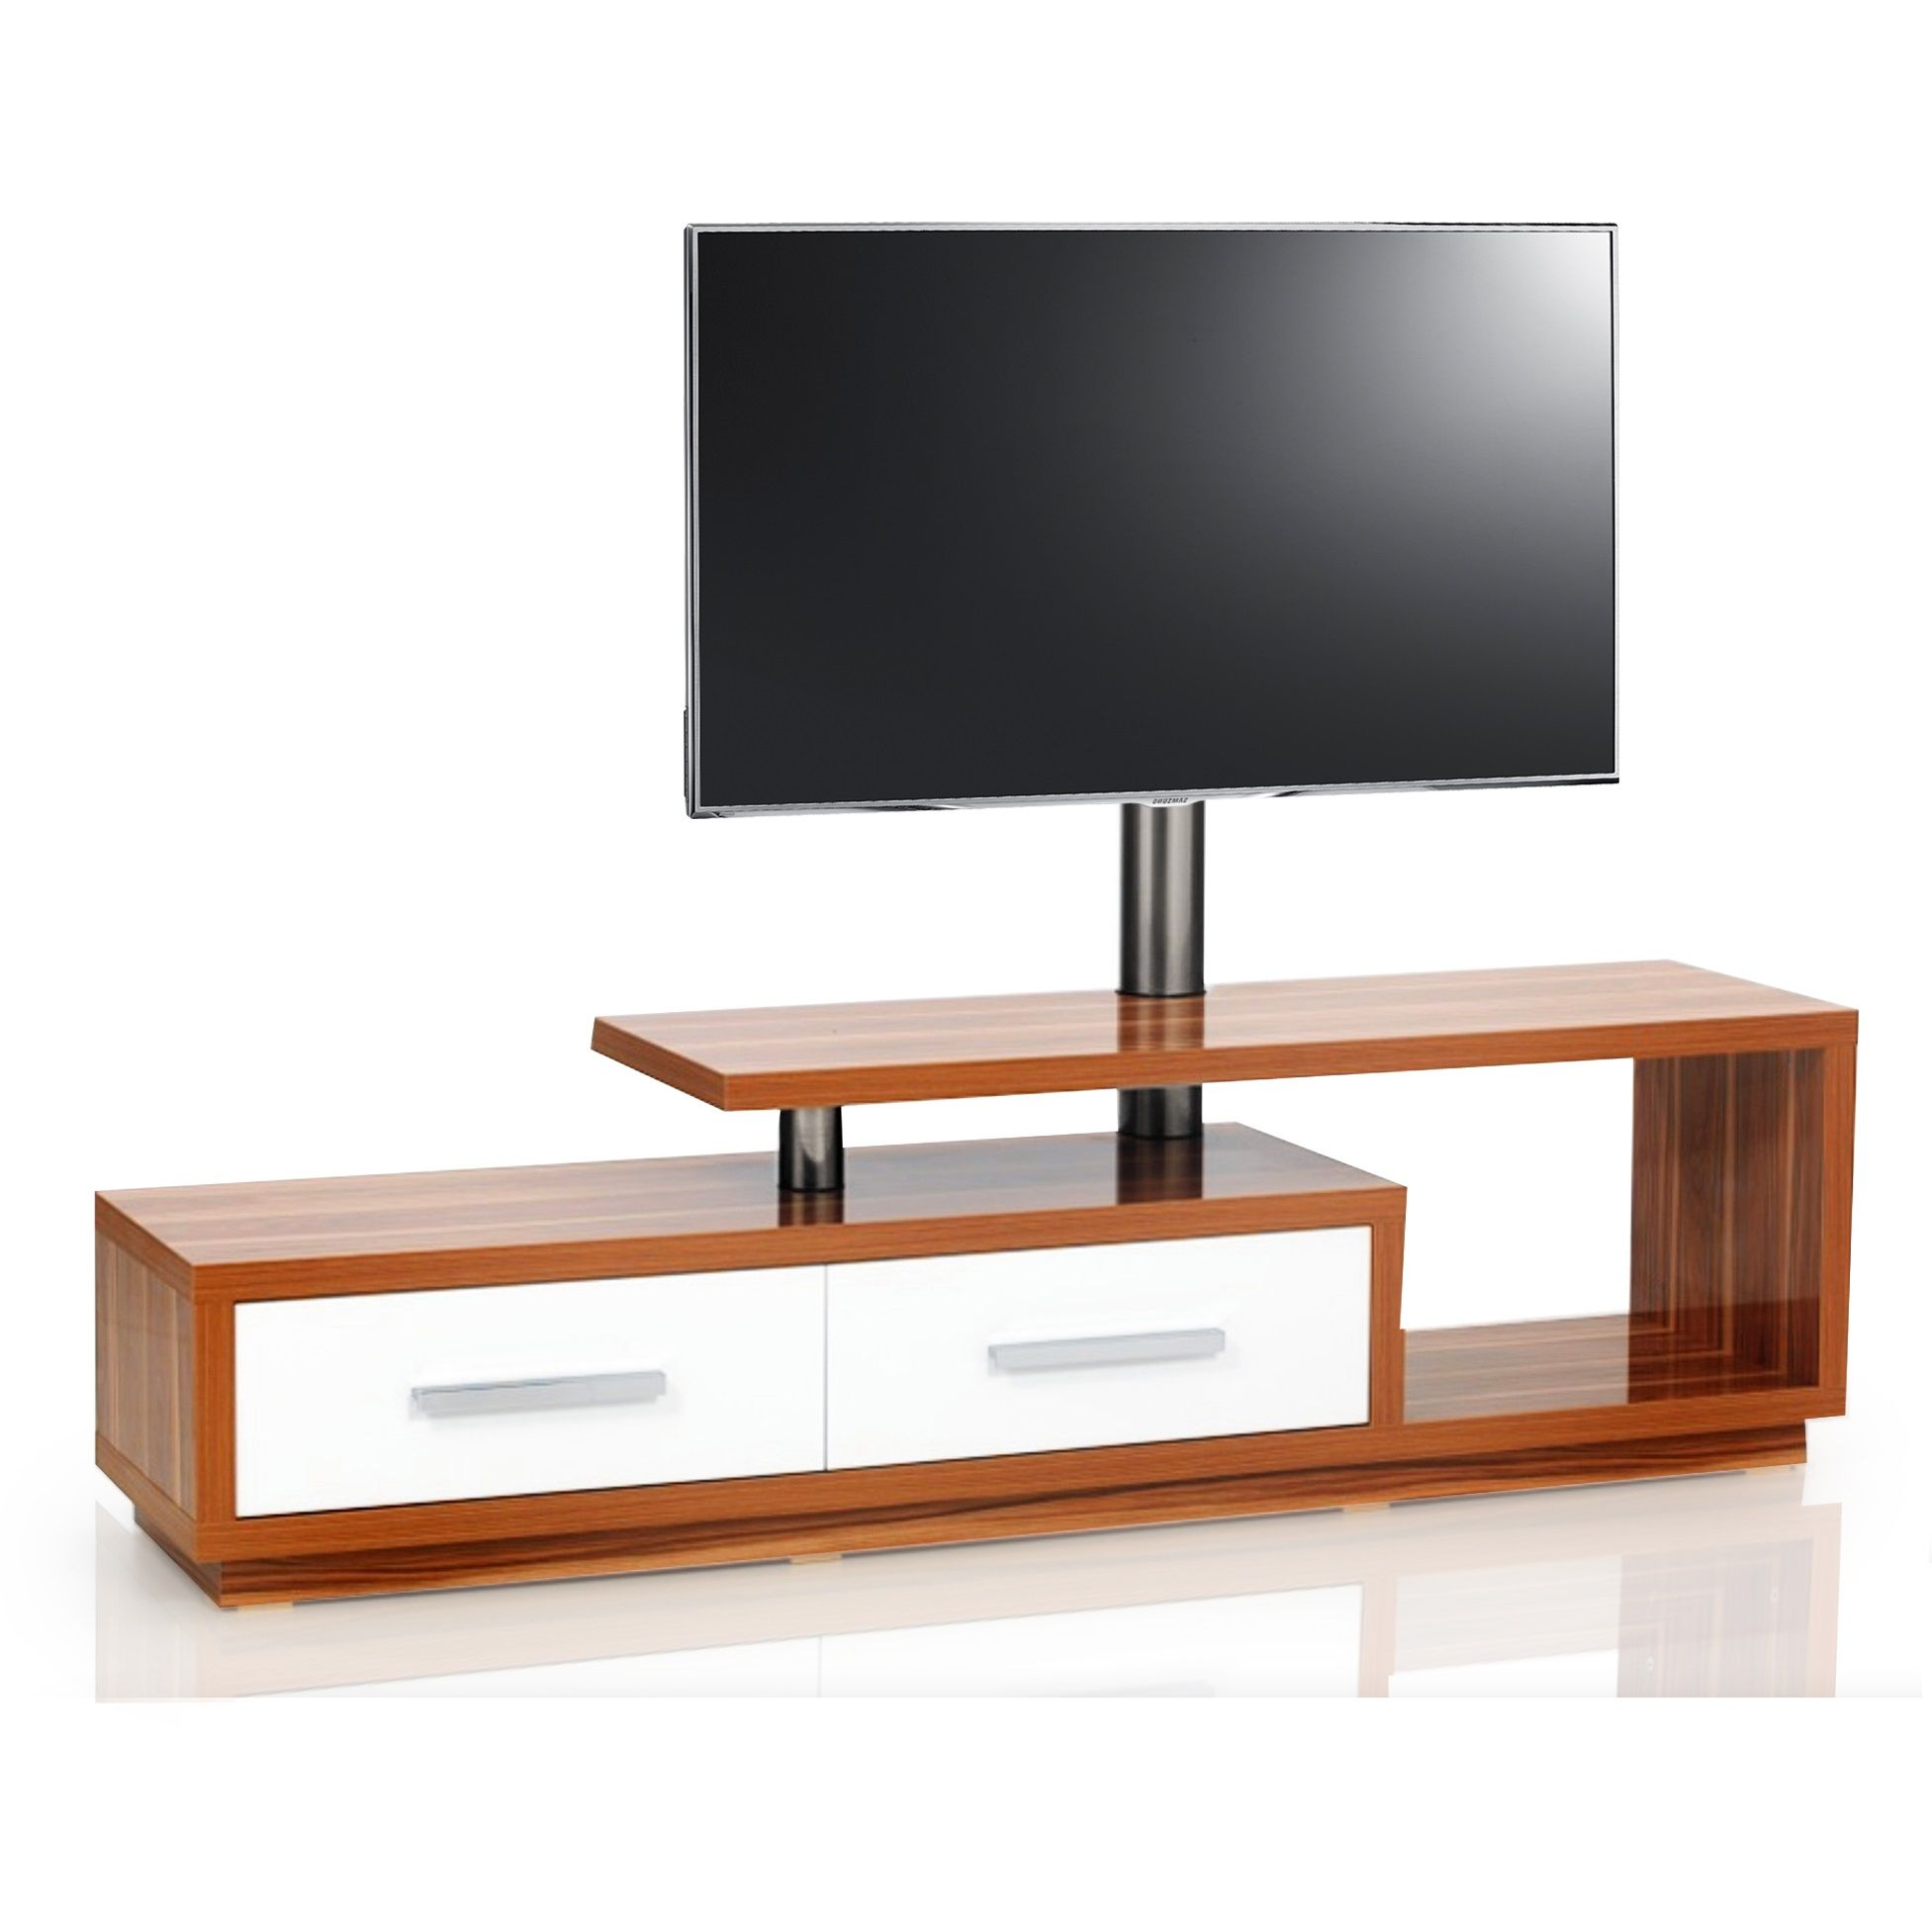 Table Tv Plasma En Bois - Stunning Tables De Television Contemporary Joshkrajcik Us [mjhdah]http://www.maisonjoffrois.fr/wp-content/uploads/2017/08/meuble-tv-design-bois-massif-lagos-135-cm-1.jpg